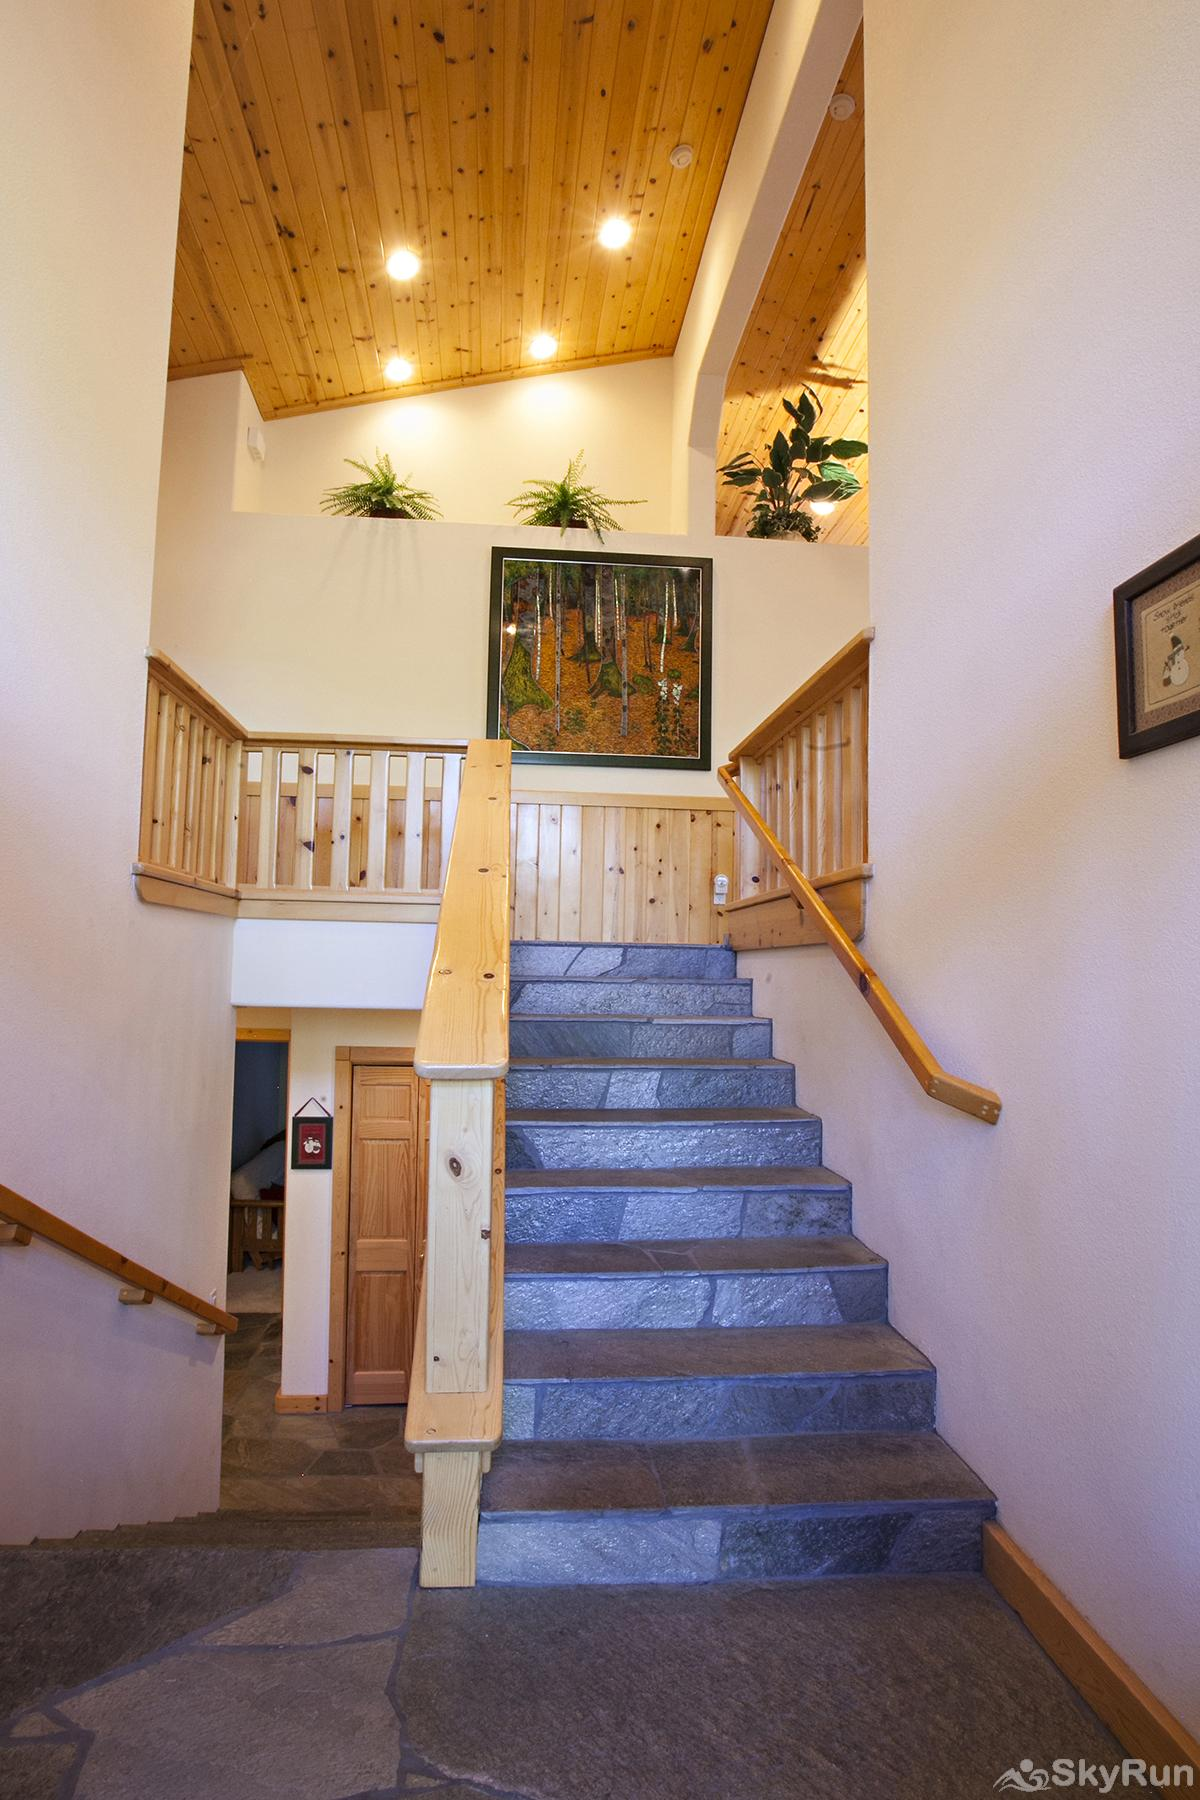 Alder Creek Mountain Home at Tahoe Donner Grand entrance with beautiful flooring and stairs leading up to main level